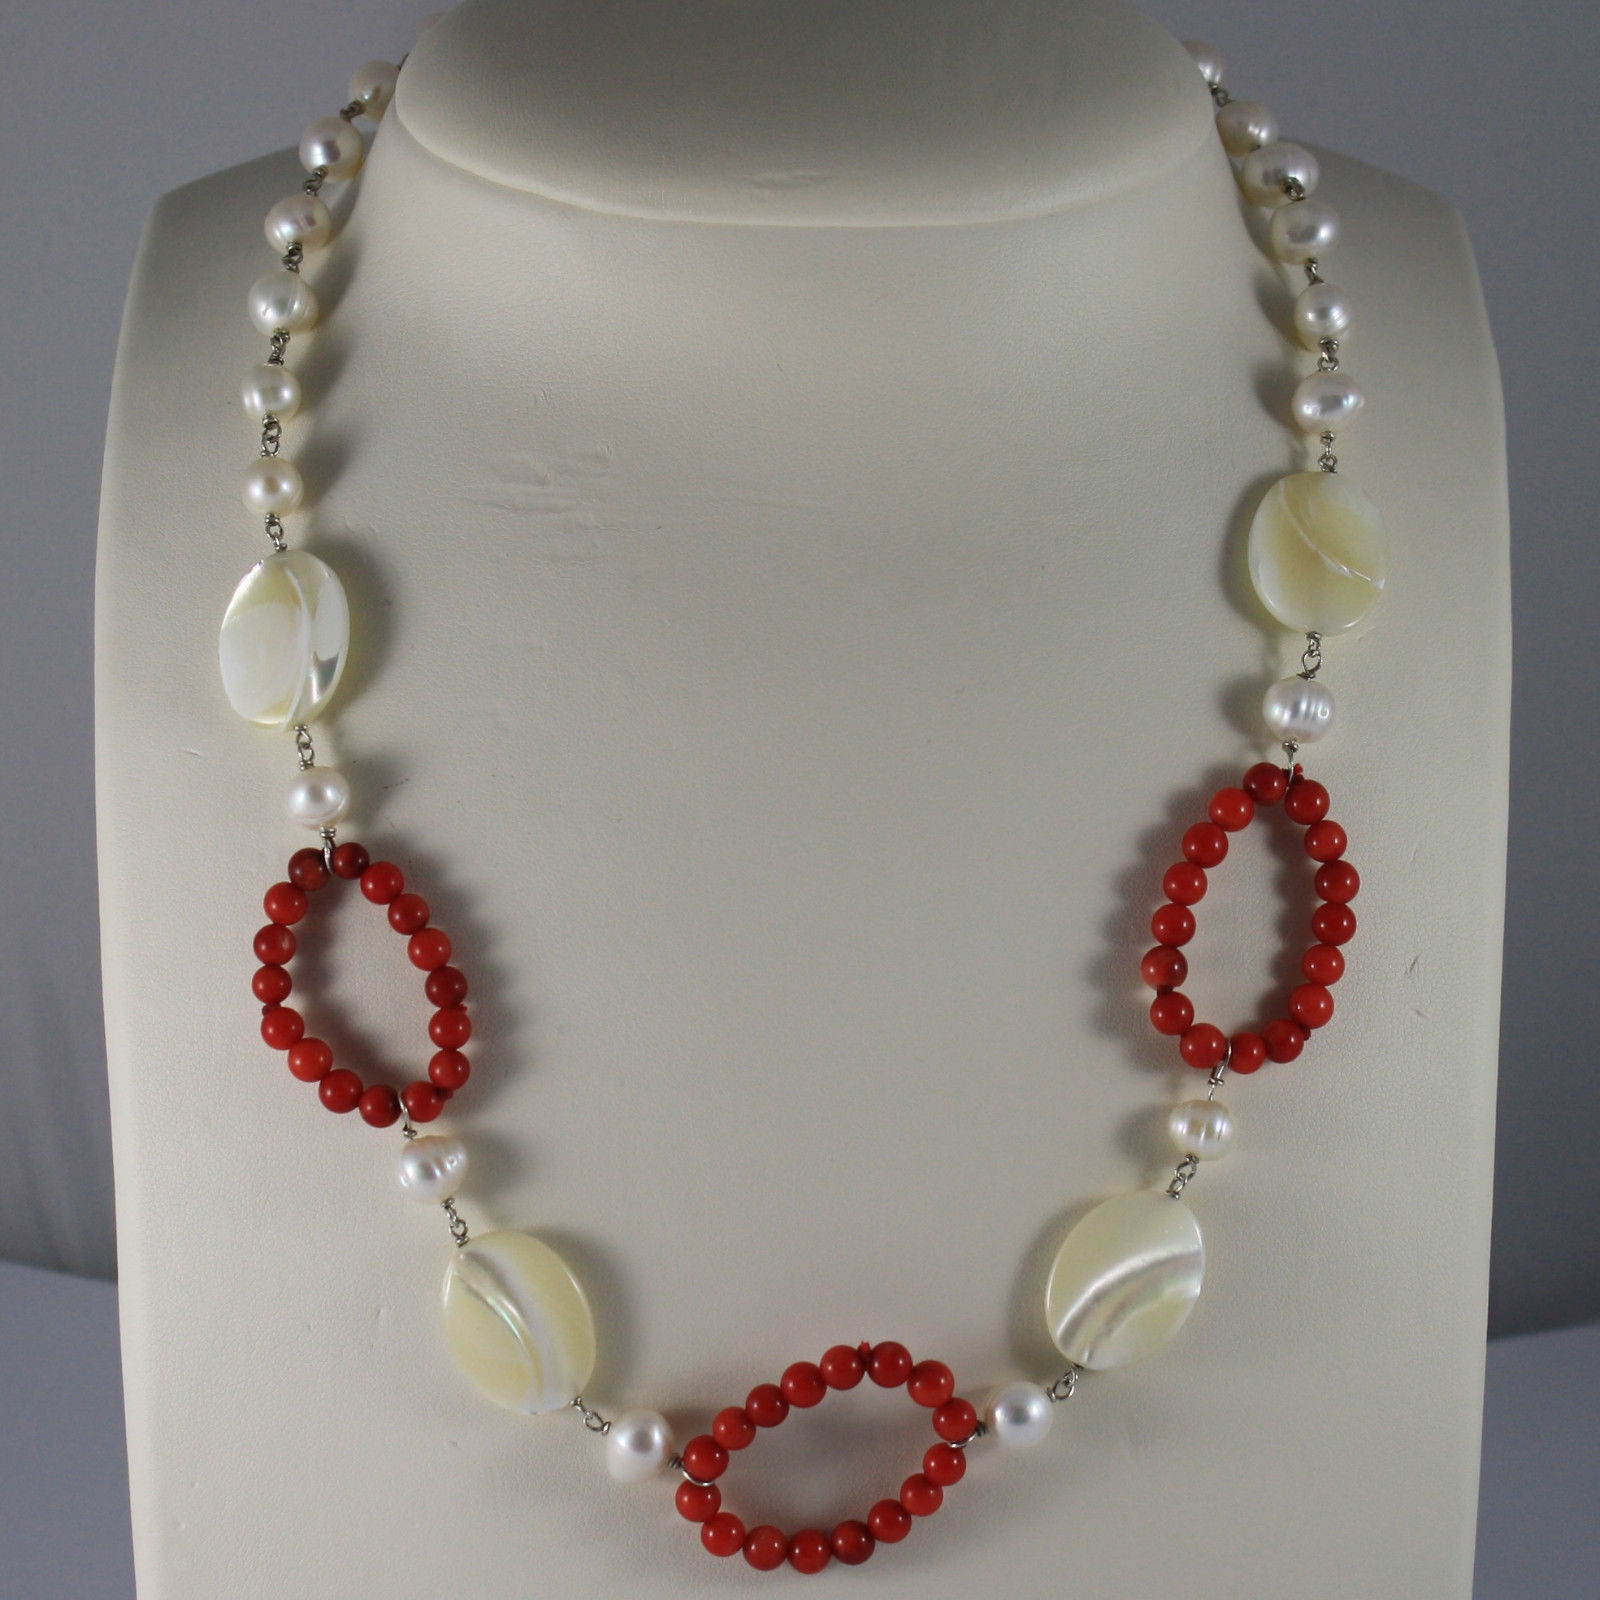 .925 RHODIUM SILVER NECKLACE WITH WHITE PEARLS, CORAL BAMBOO AND MOTHER OF PEARL